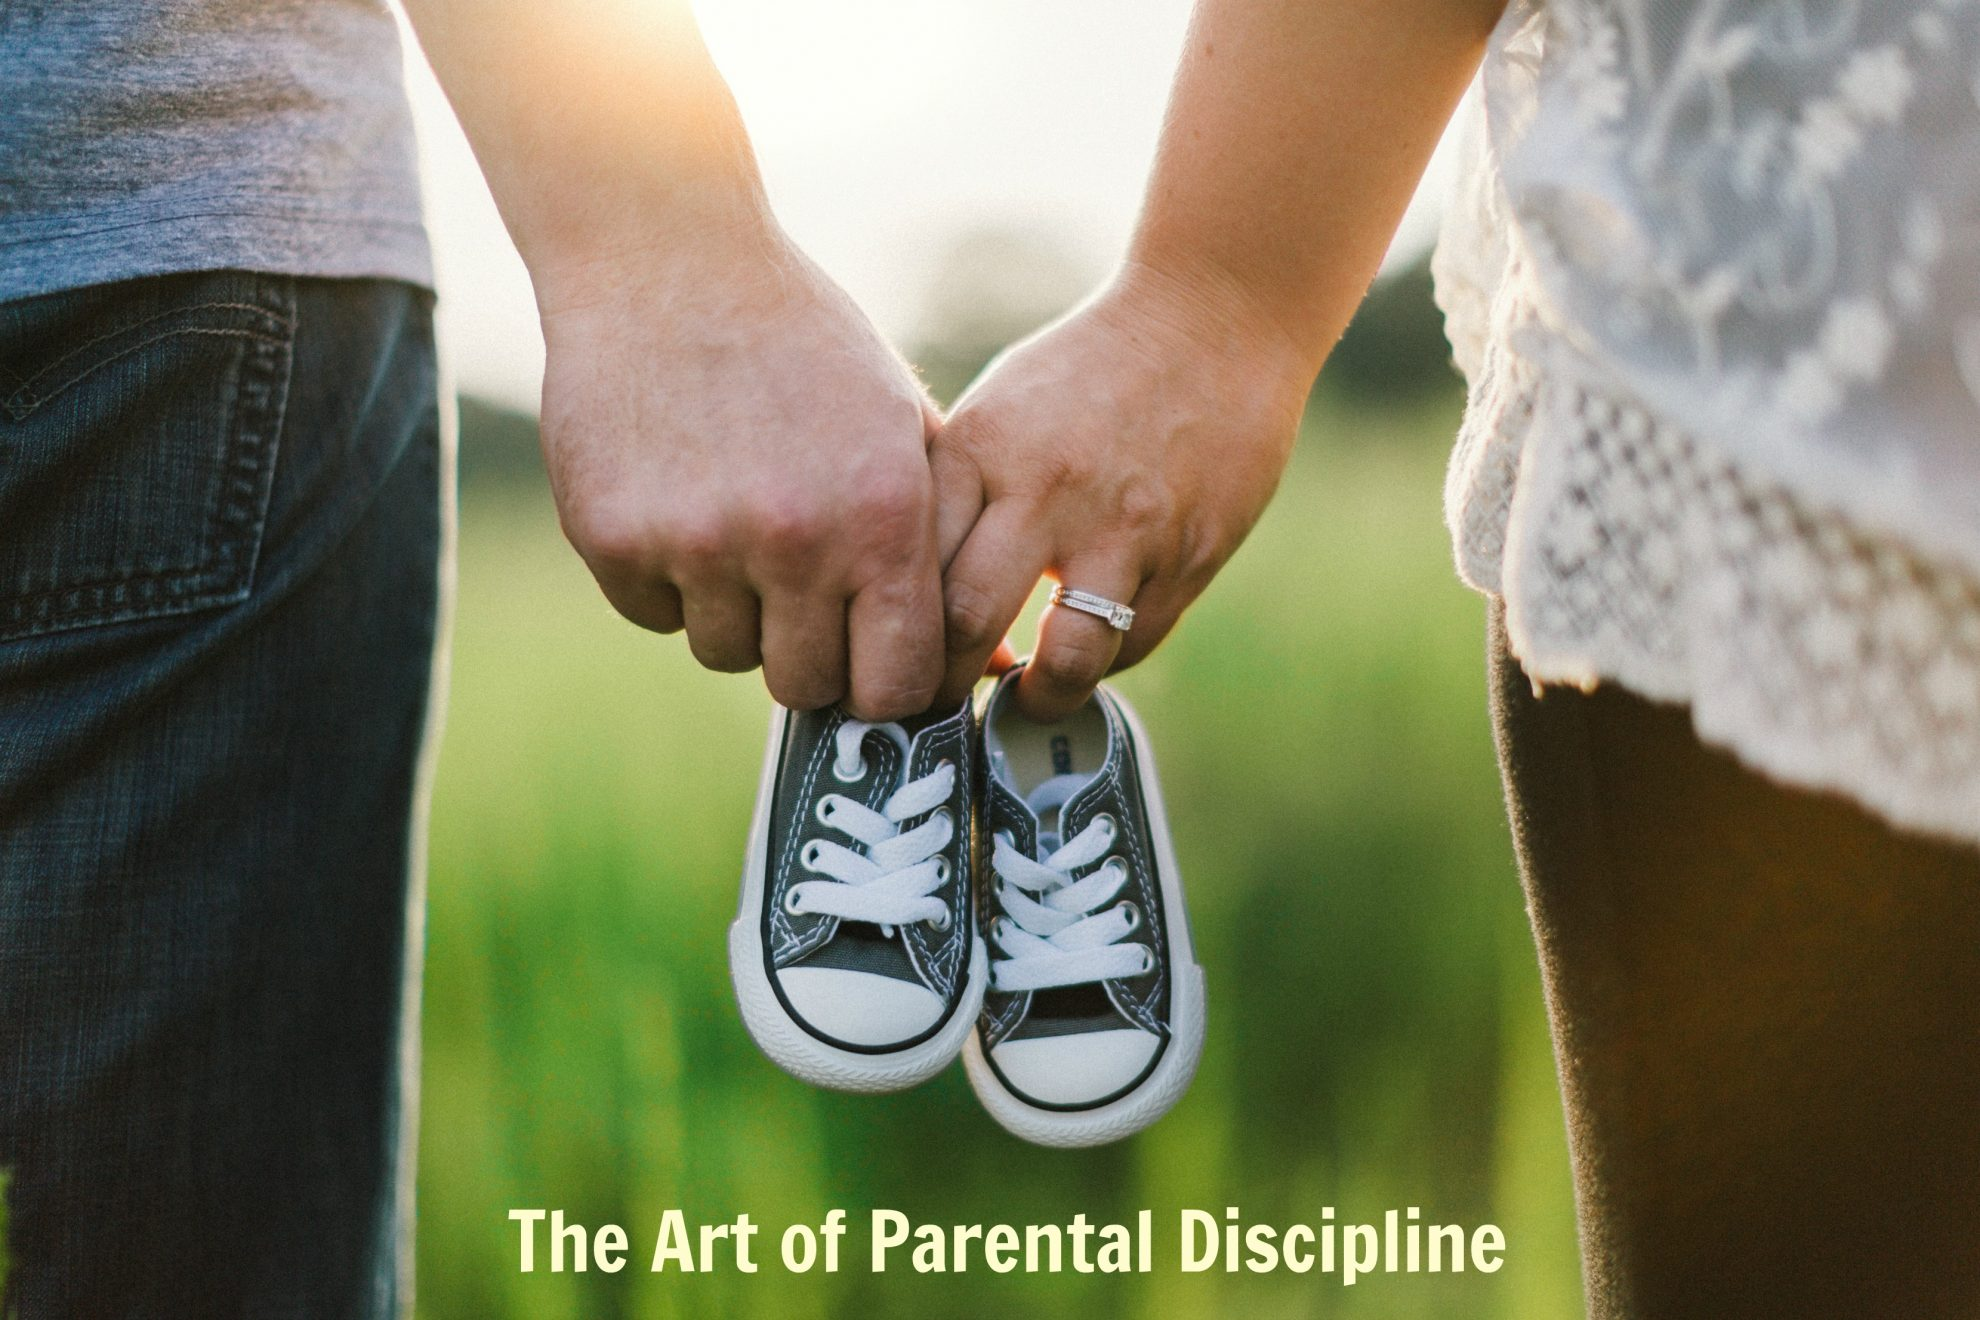 The Art of Parental Discipline